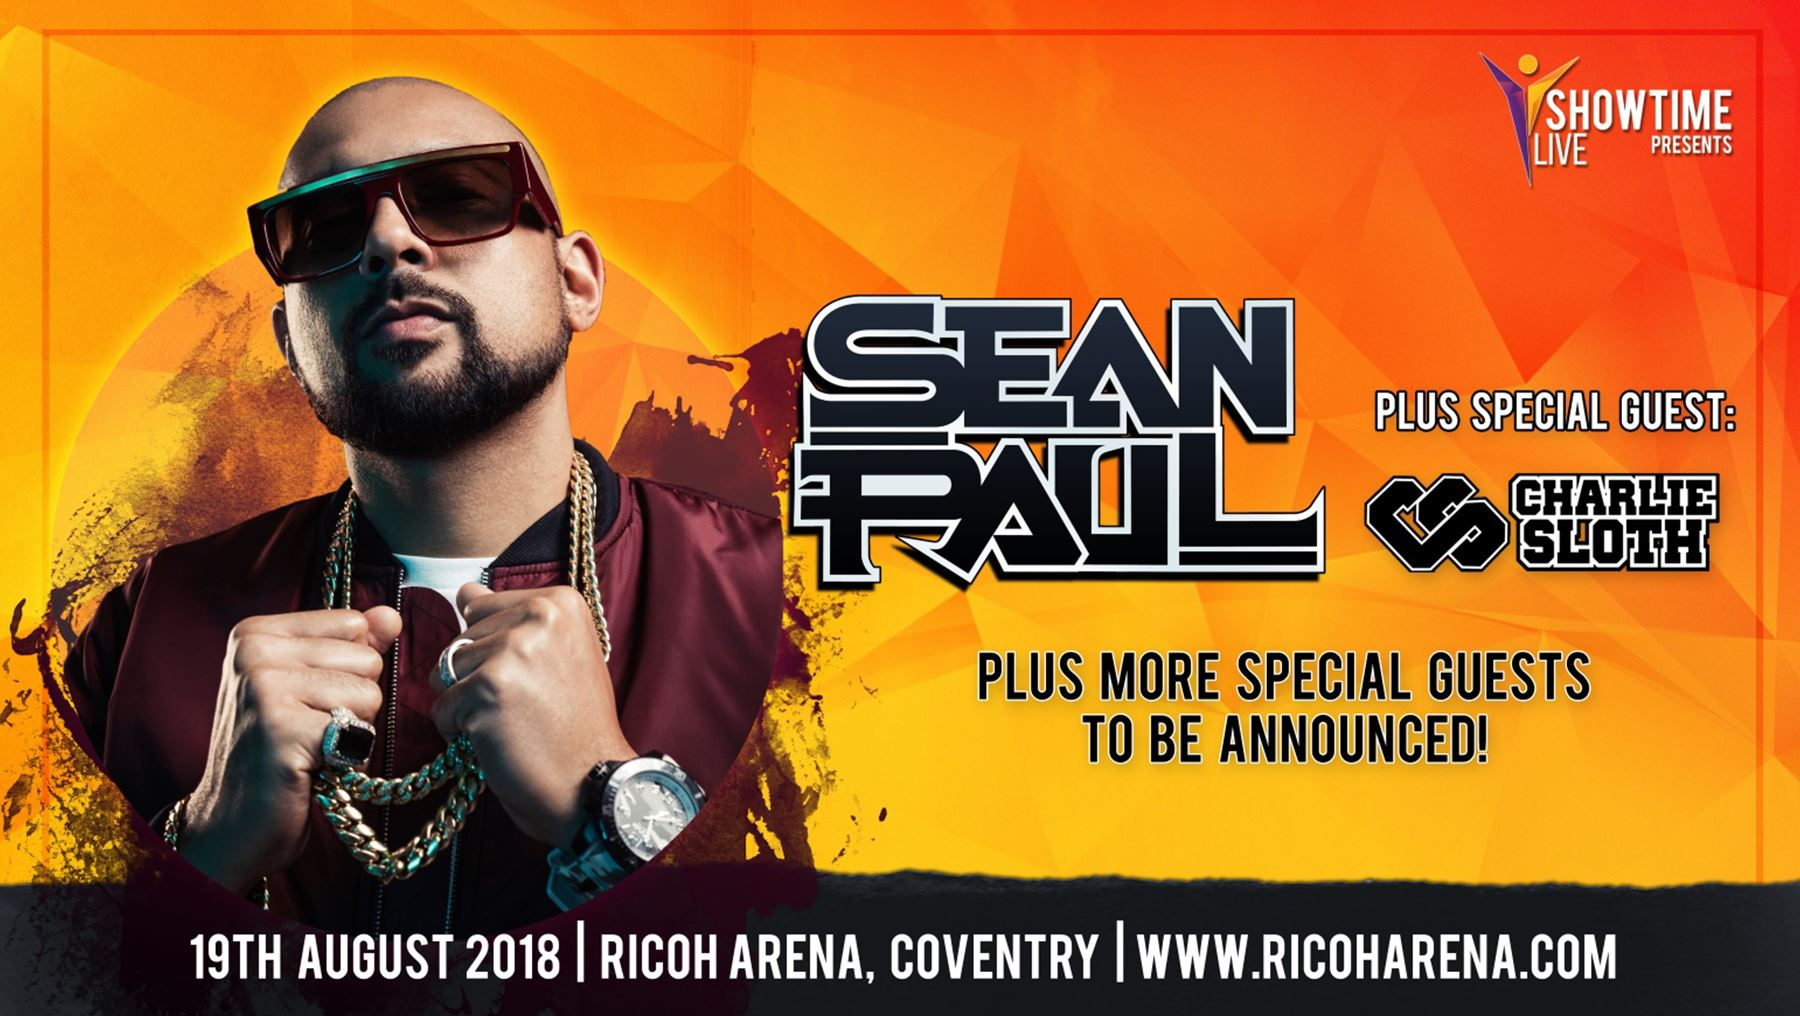 Sean Paul is coming to the Ricoh Arena in August